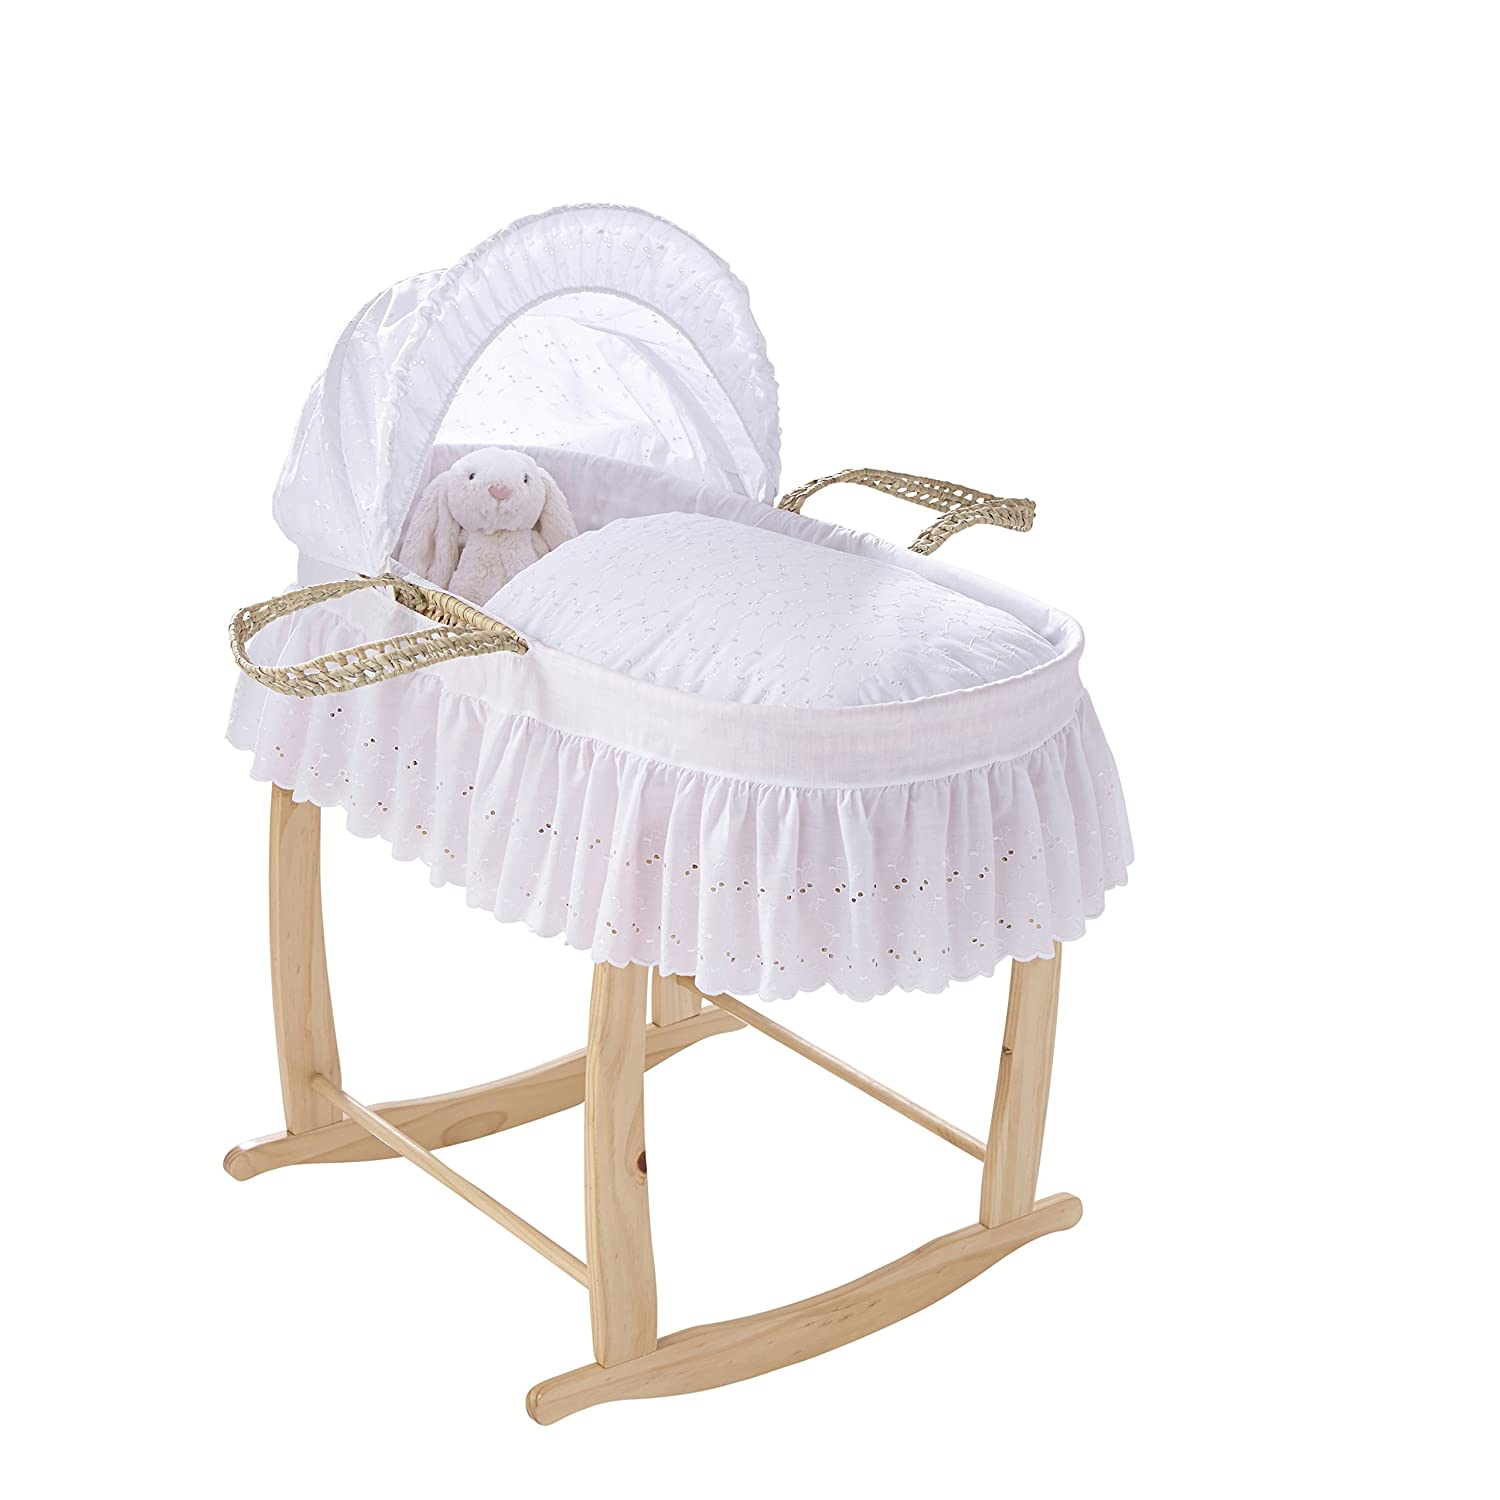 Clair de Lune Traditional Broderie Anglaise Palm Moses Basket with Skirt inc. bedding, mattress & adjustable hood (White) 3516WE